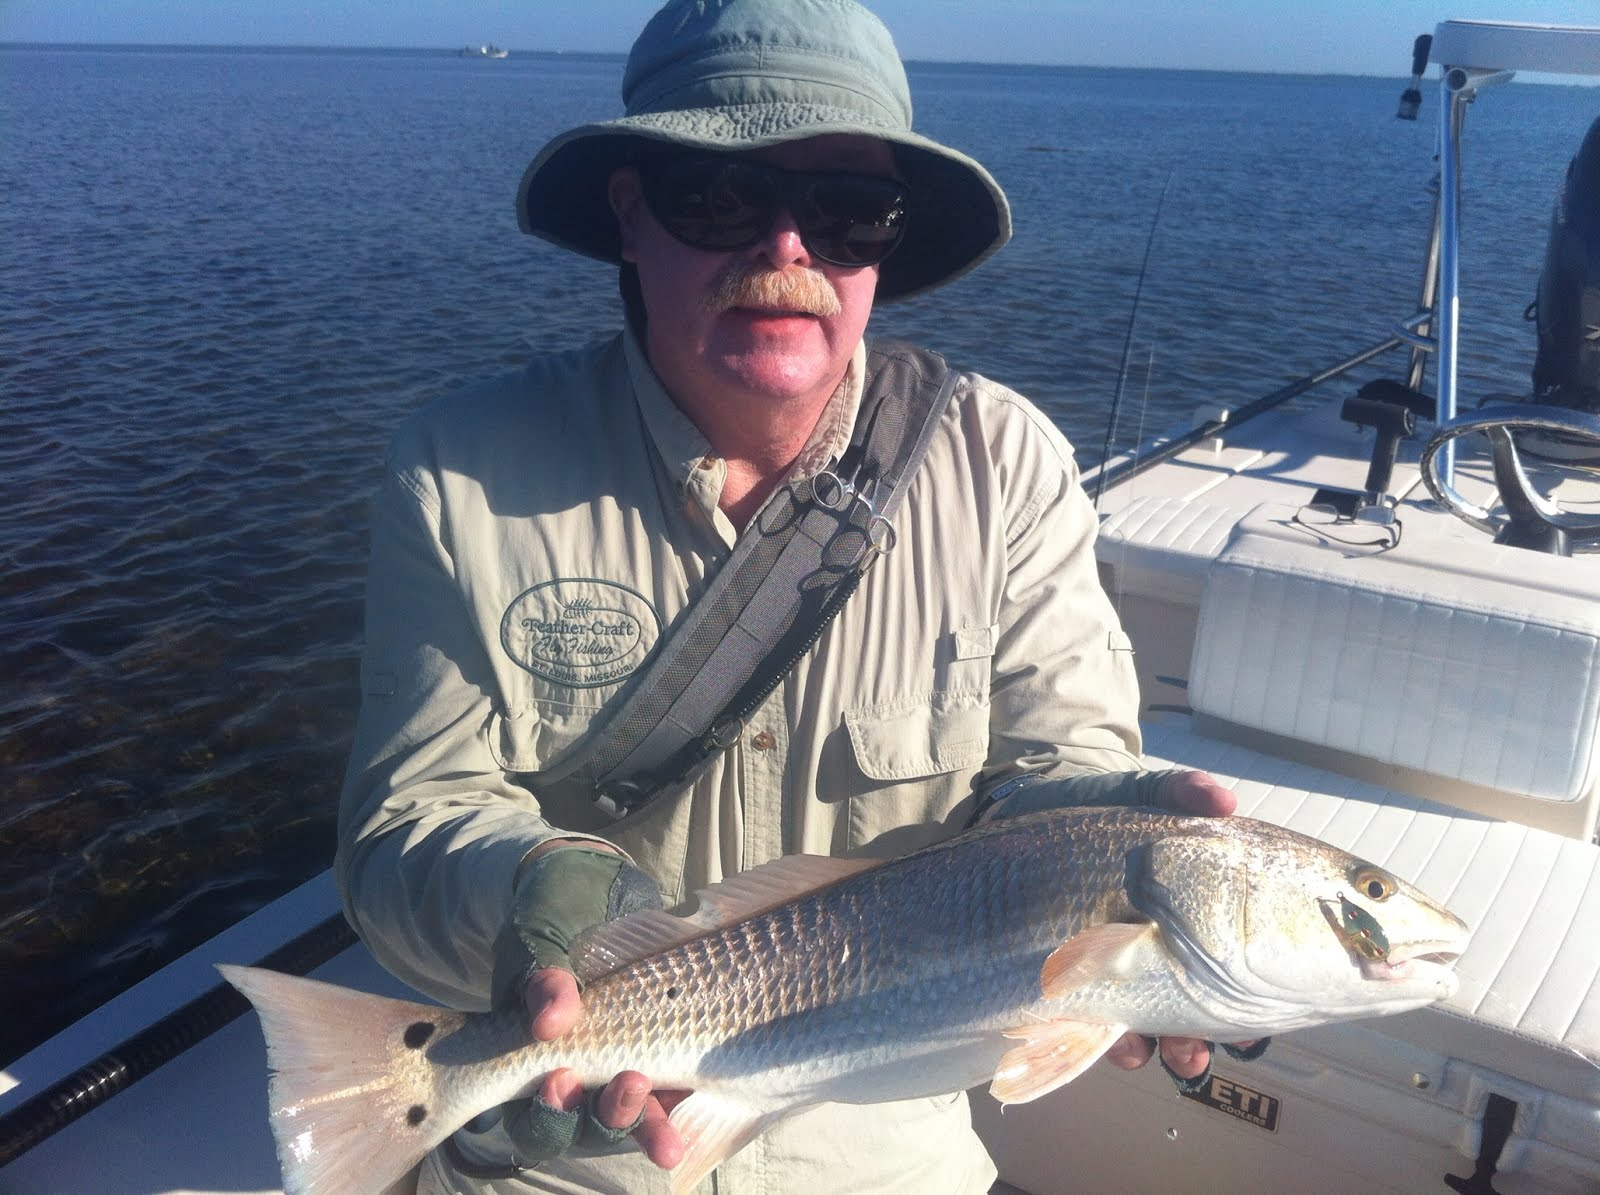 Fort myers and sanibel island fishing charter reports and for Feather craft fly fishing